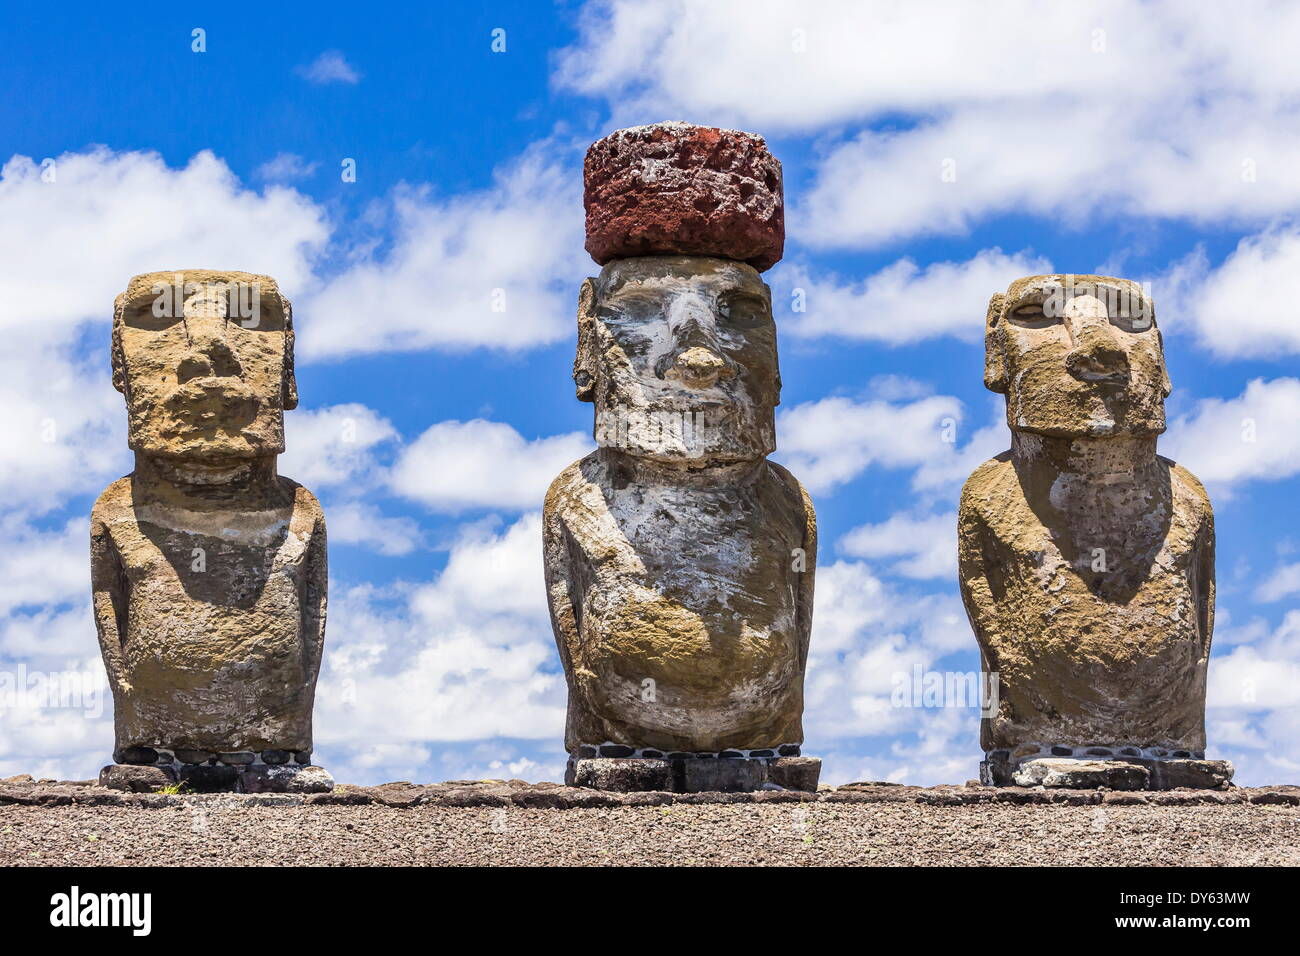 Details of moai at the restored ceremonial site of Ahu Tongariki on Easter Island (Rapa Nui), UNESCO Site, Chile - Stock Image